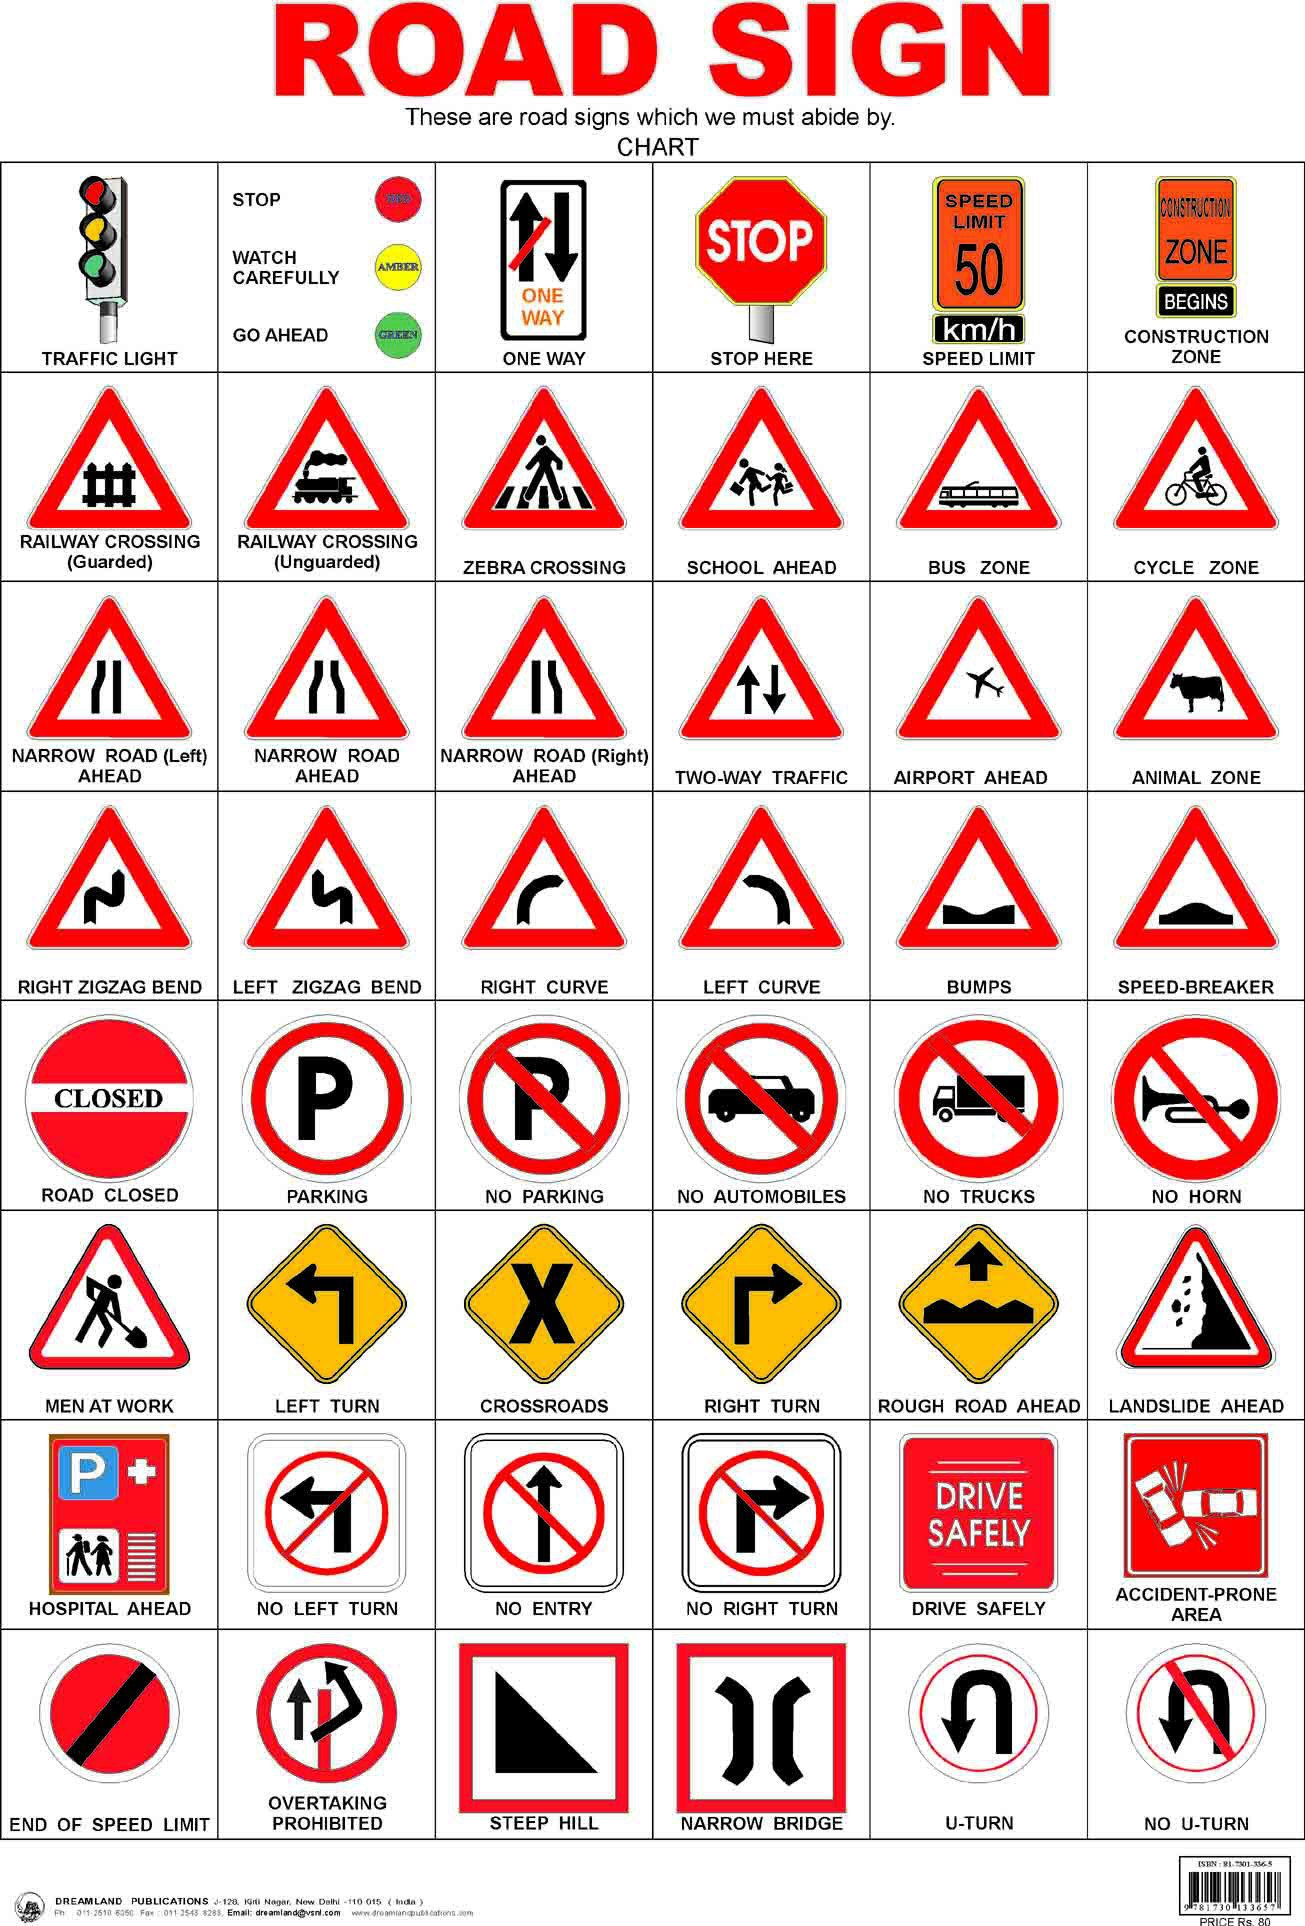 Pin by Reeshma Shetty on Shamiths board Traffic signs